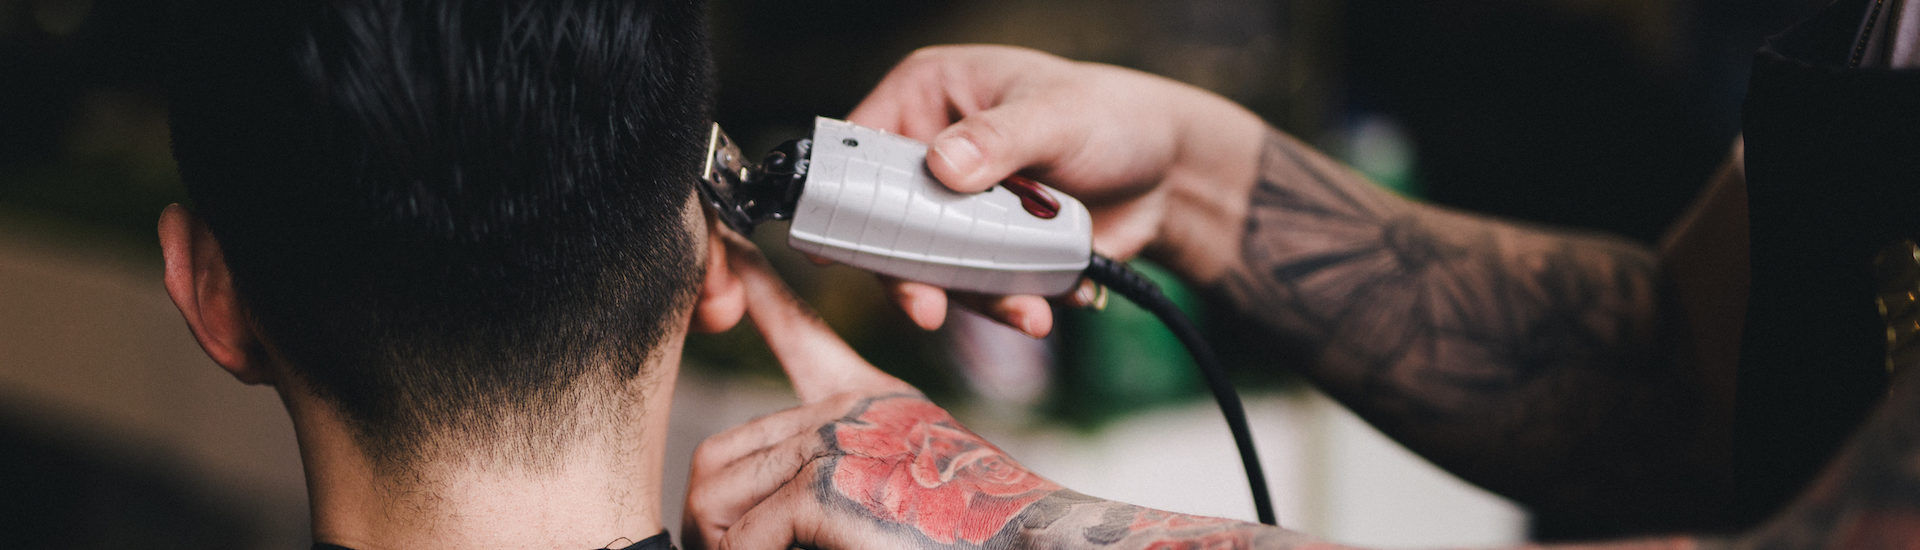 List of English-speaking hair salons and barber shops in Berlin